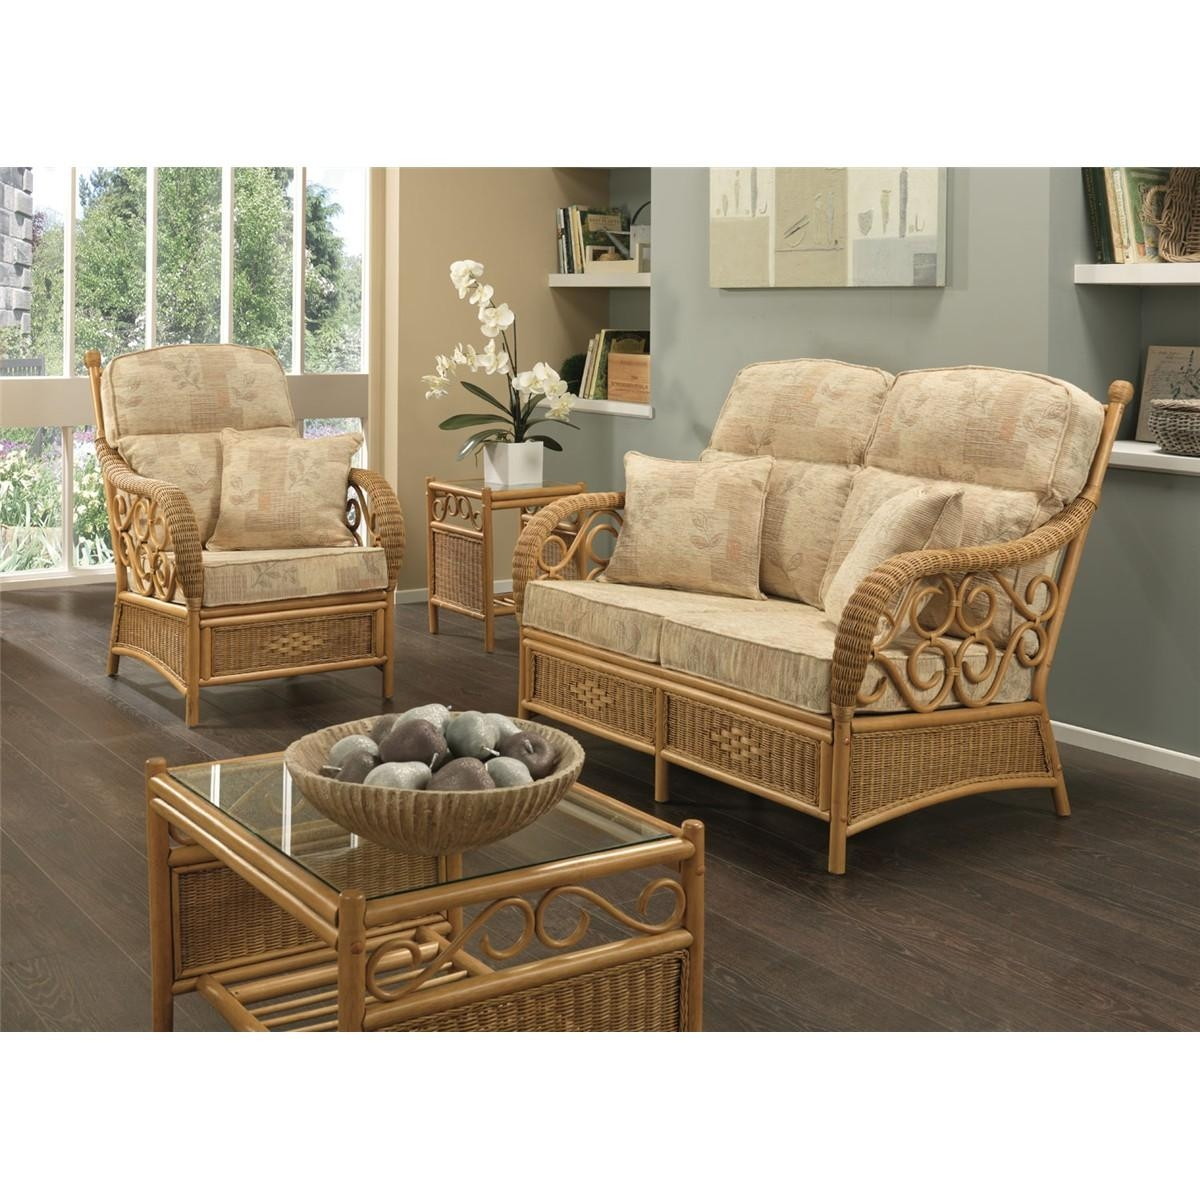 Modern Cane Furniture With Regard To Cane Sofas (View 4 of 20)